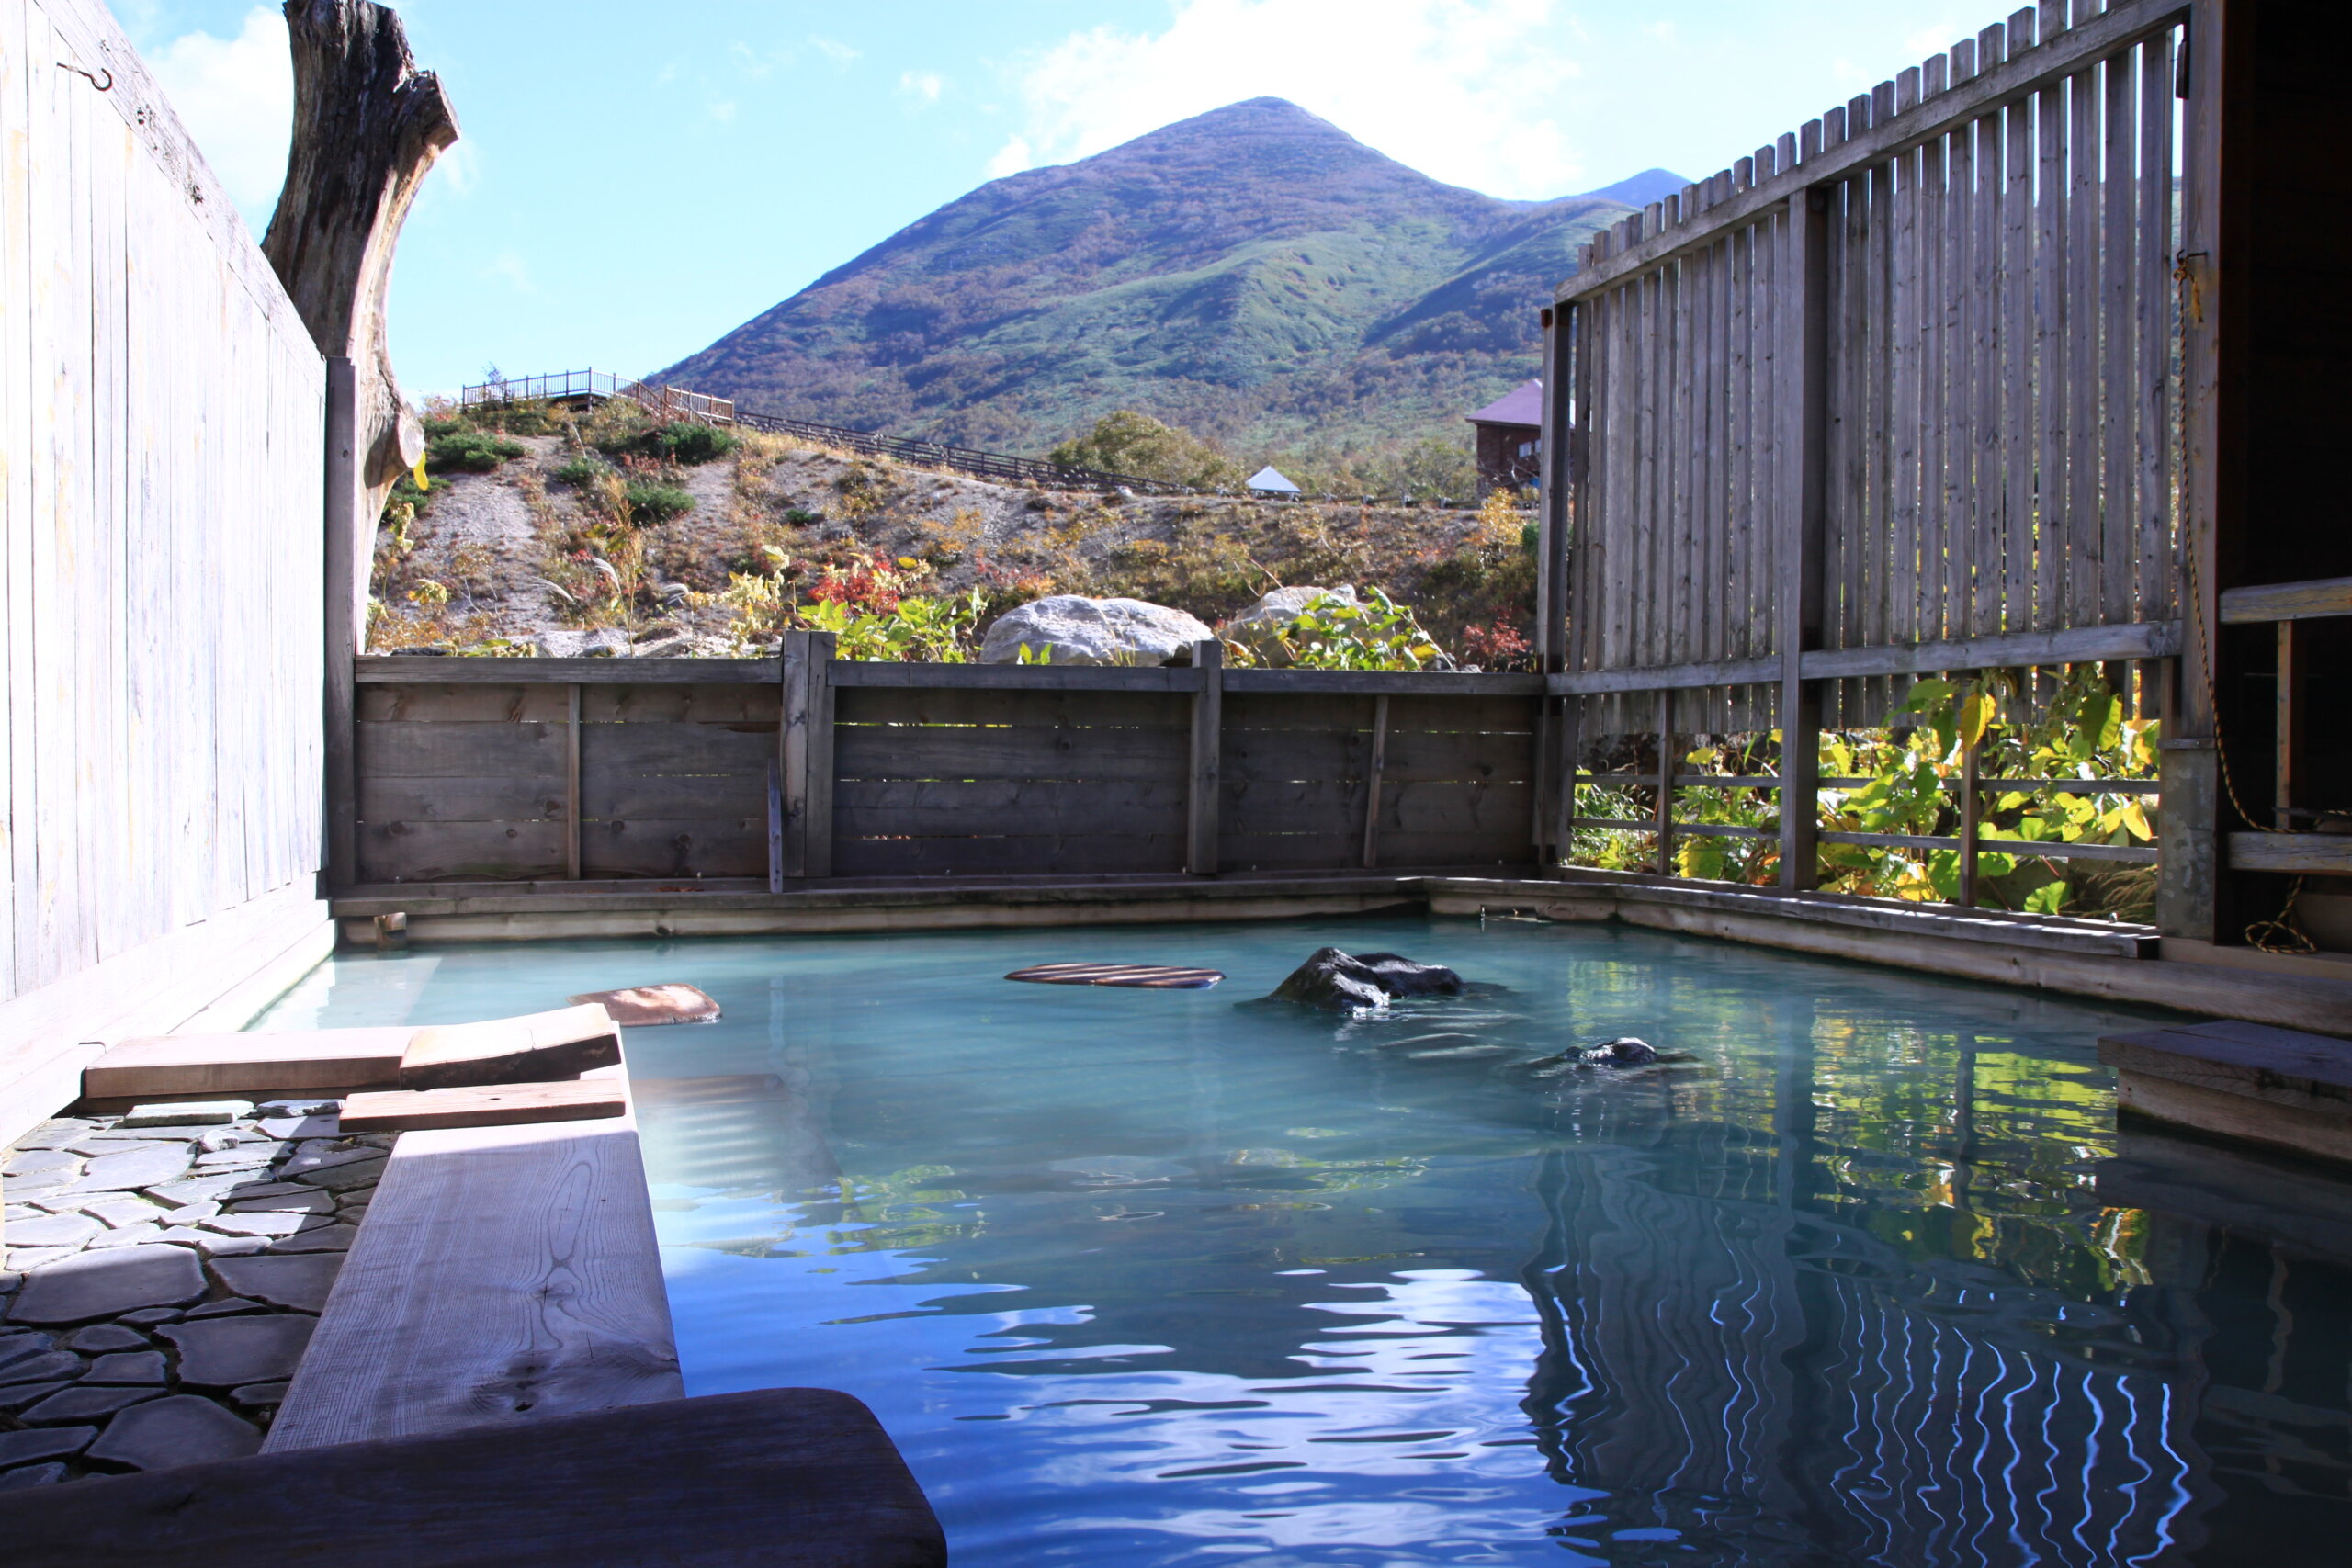 Enjoy an Onsen with Beautiful Springs and Spectacular Views of the Niseko Mountains